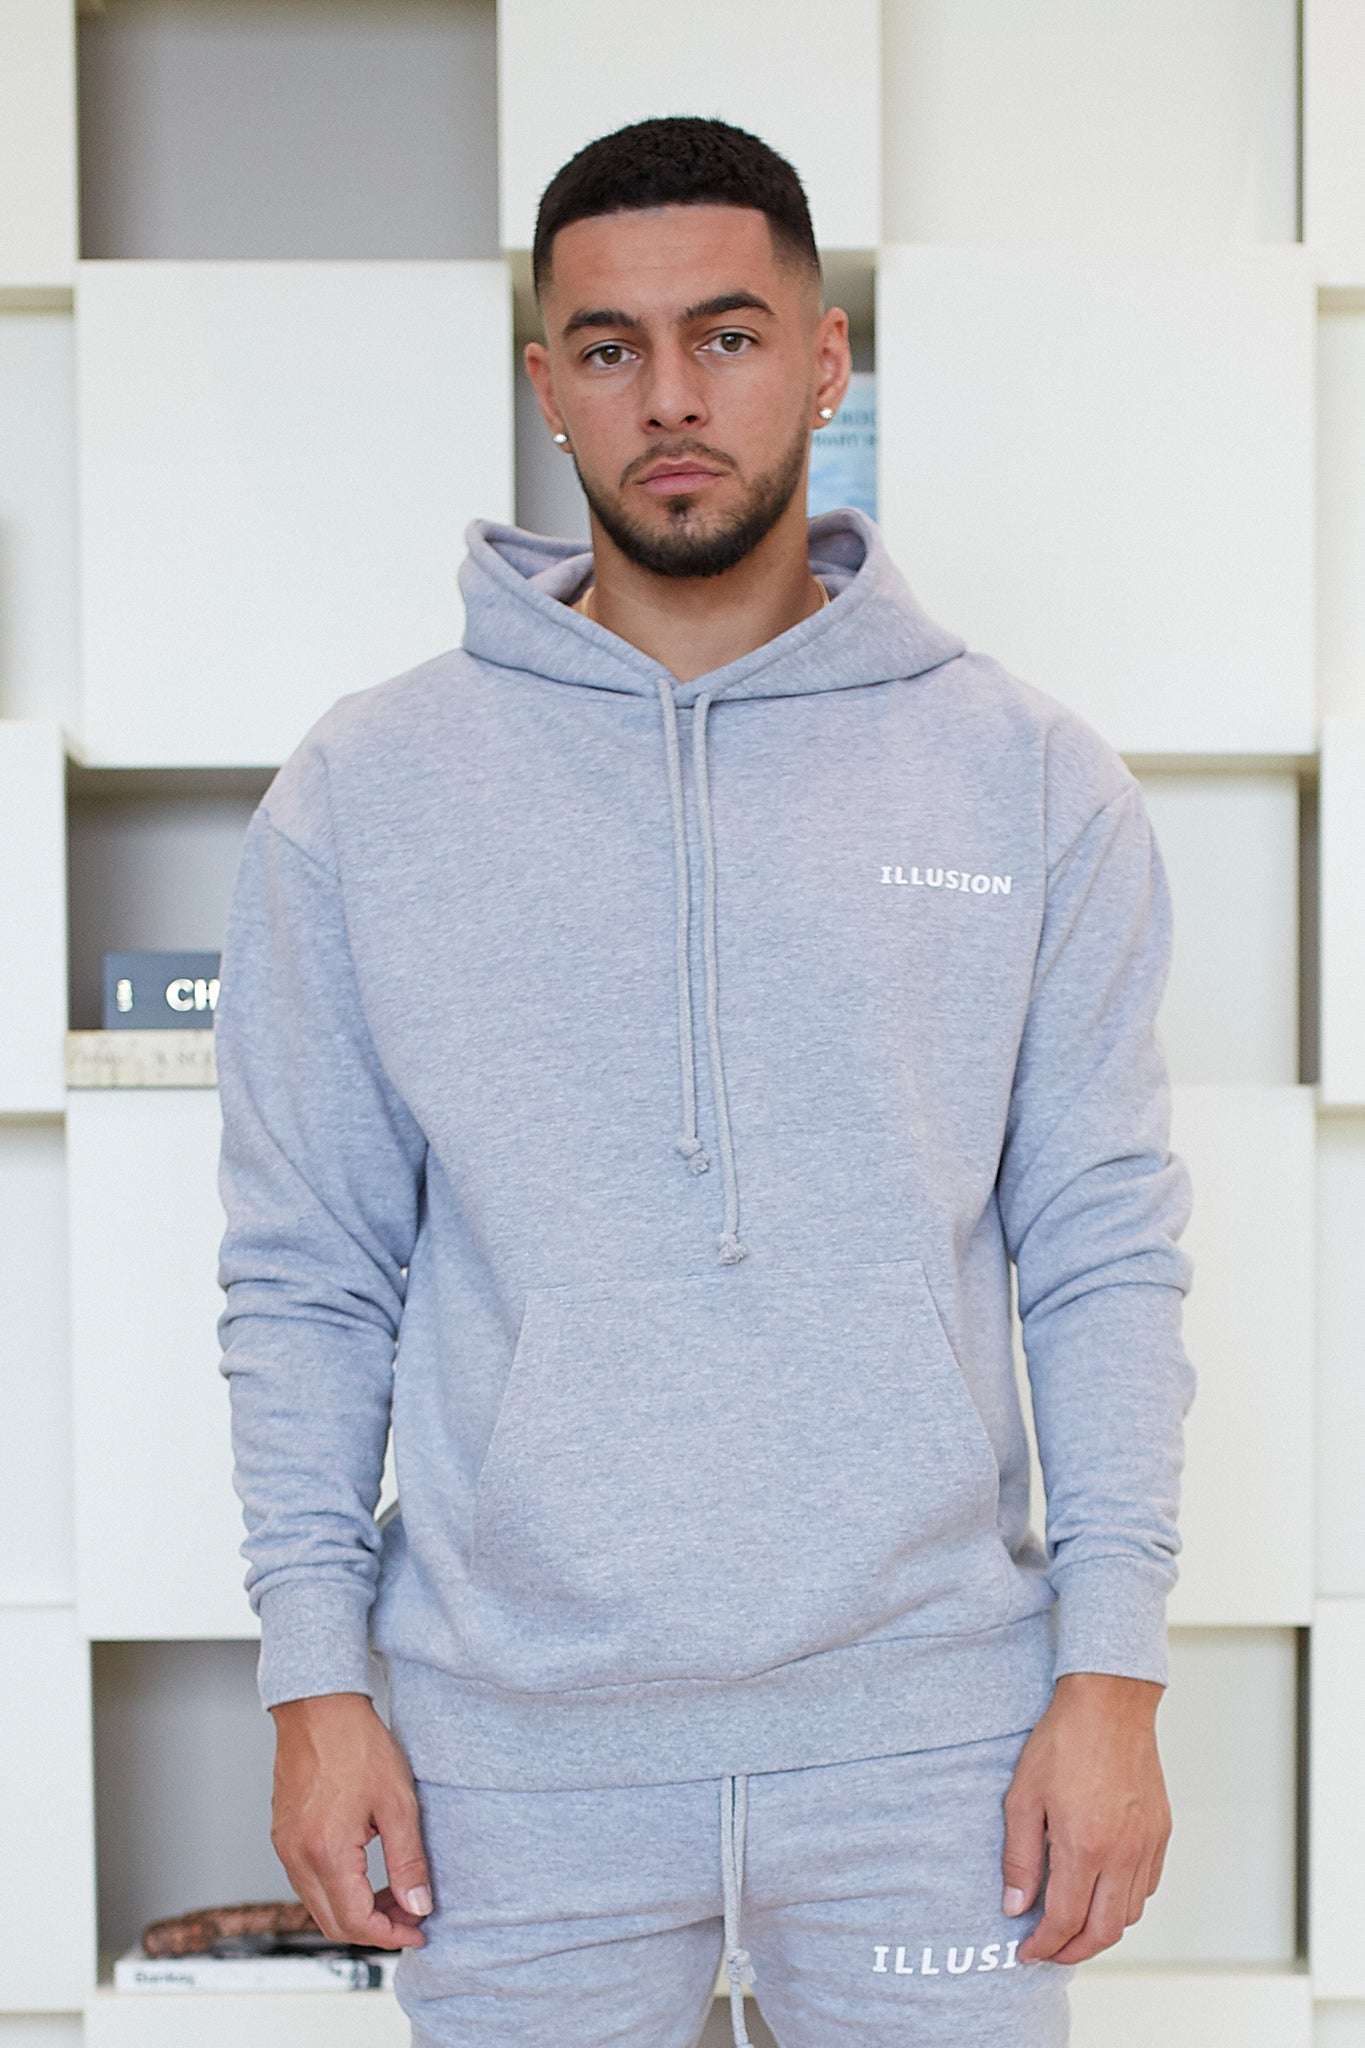 GREY ESSENTIALS HOODIE - Illusion Attire